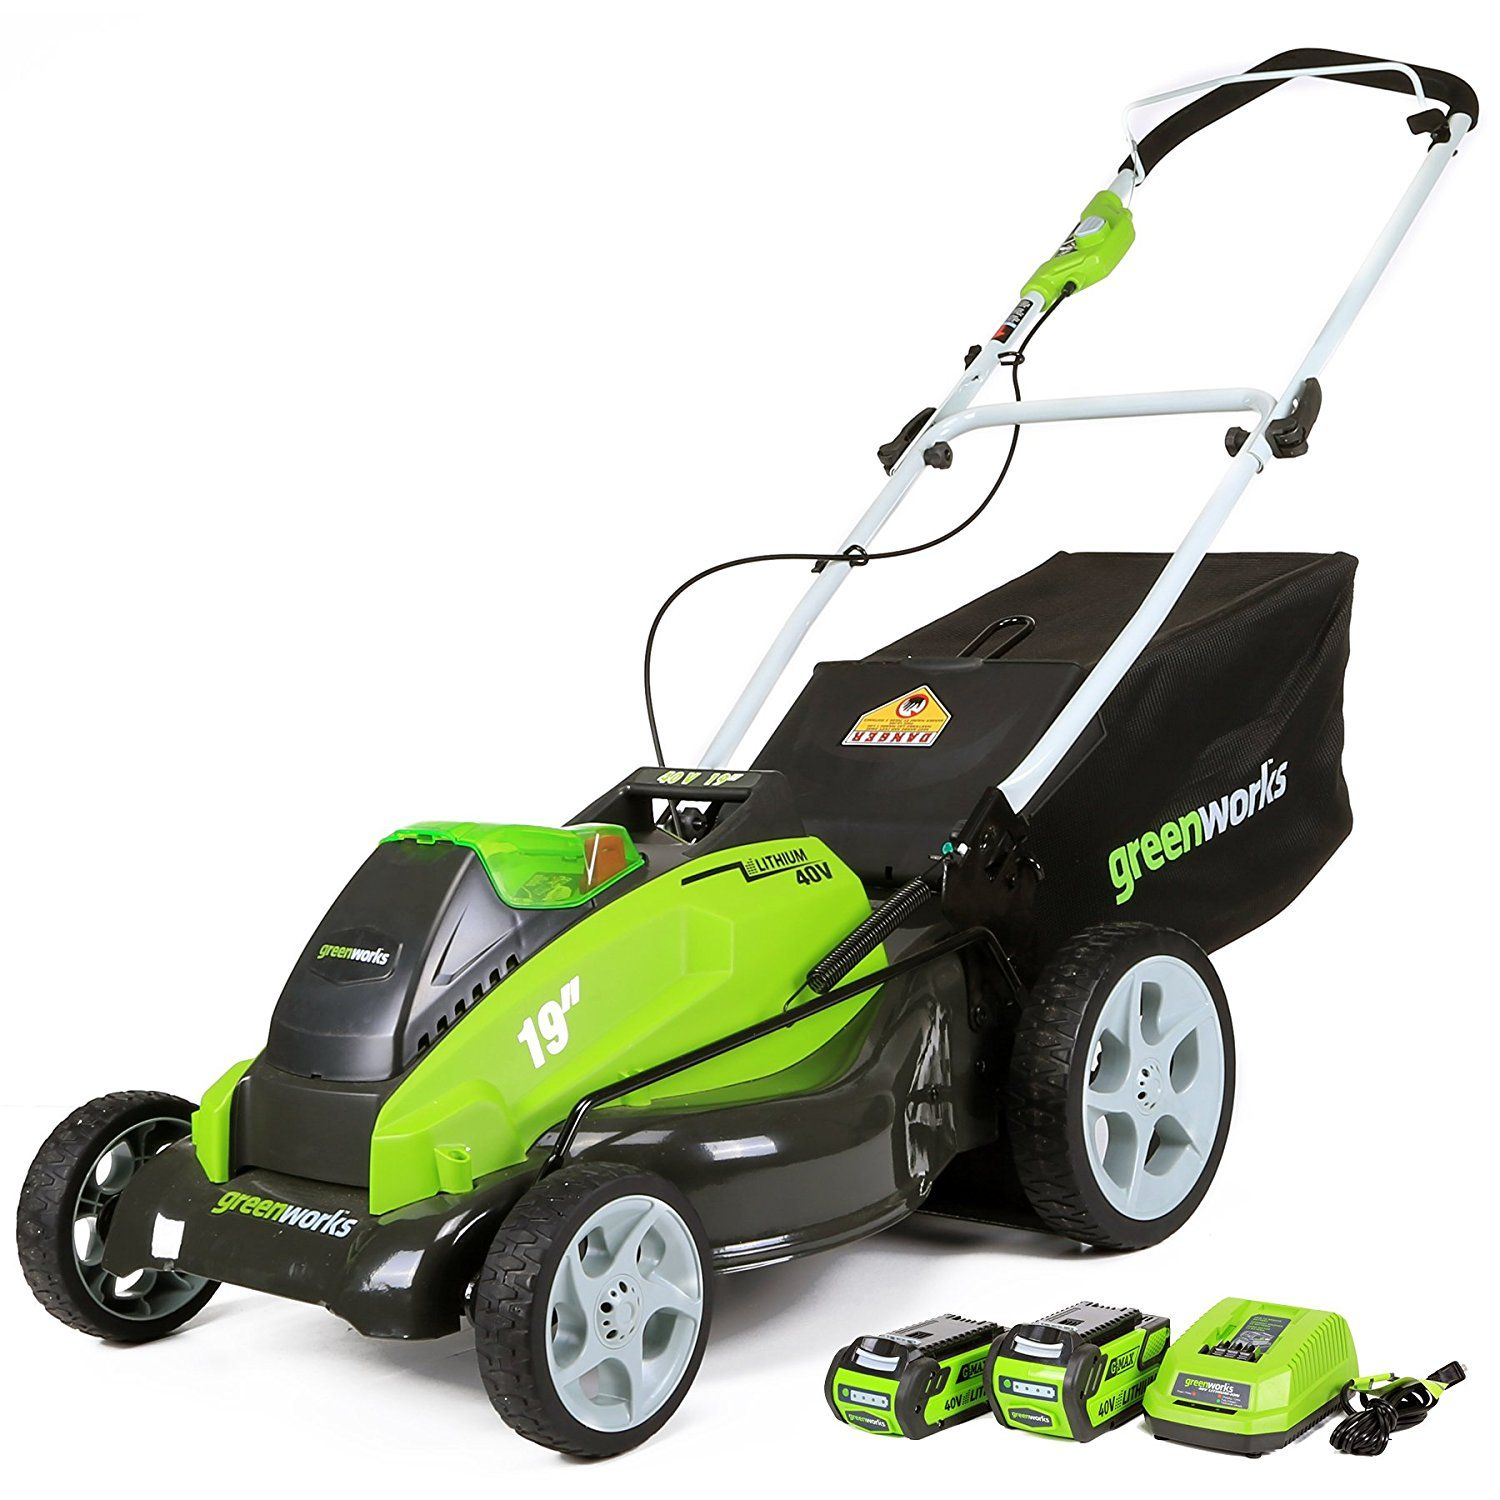 GreenWorks G-MAX Mower